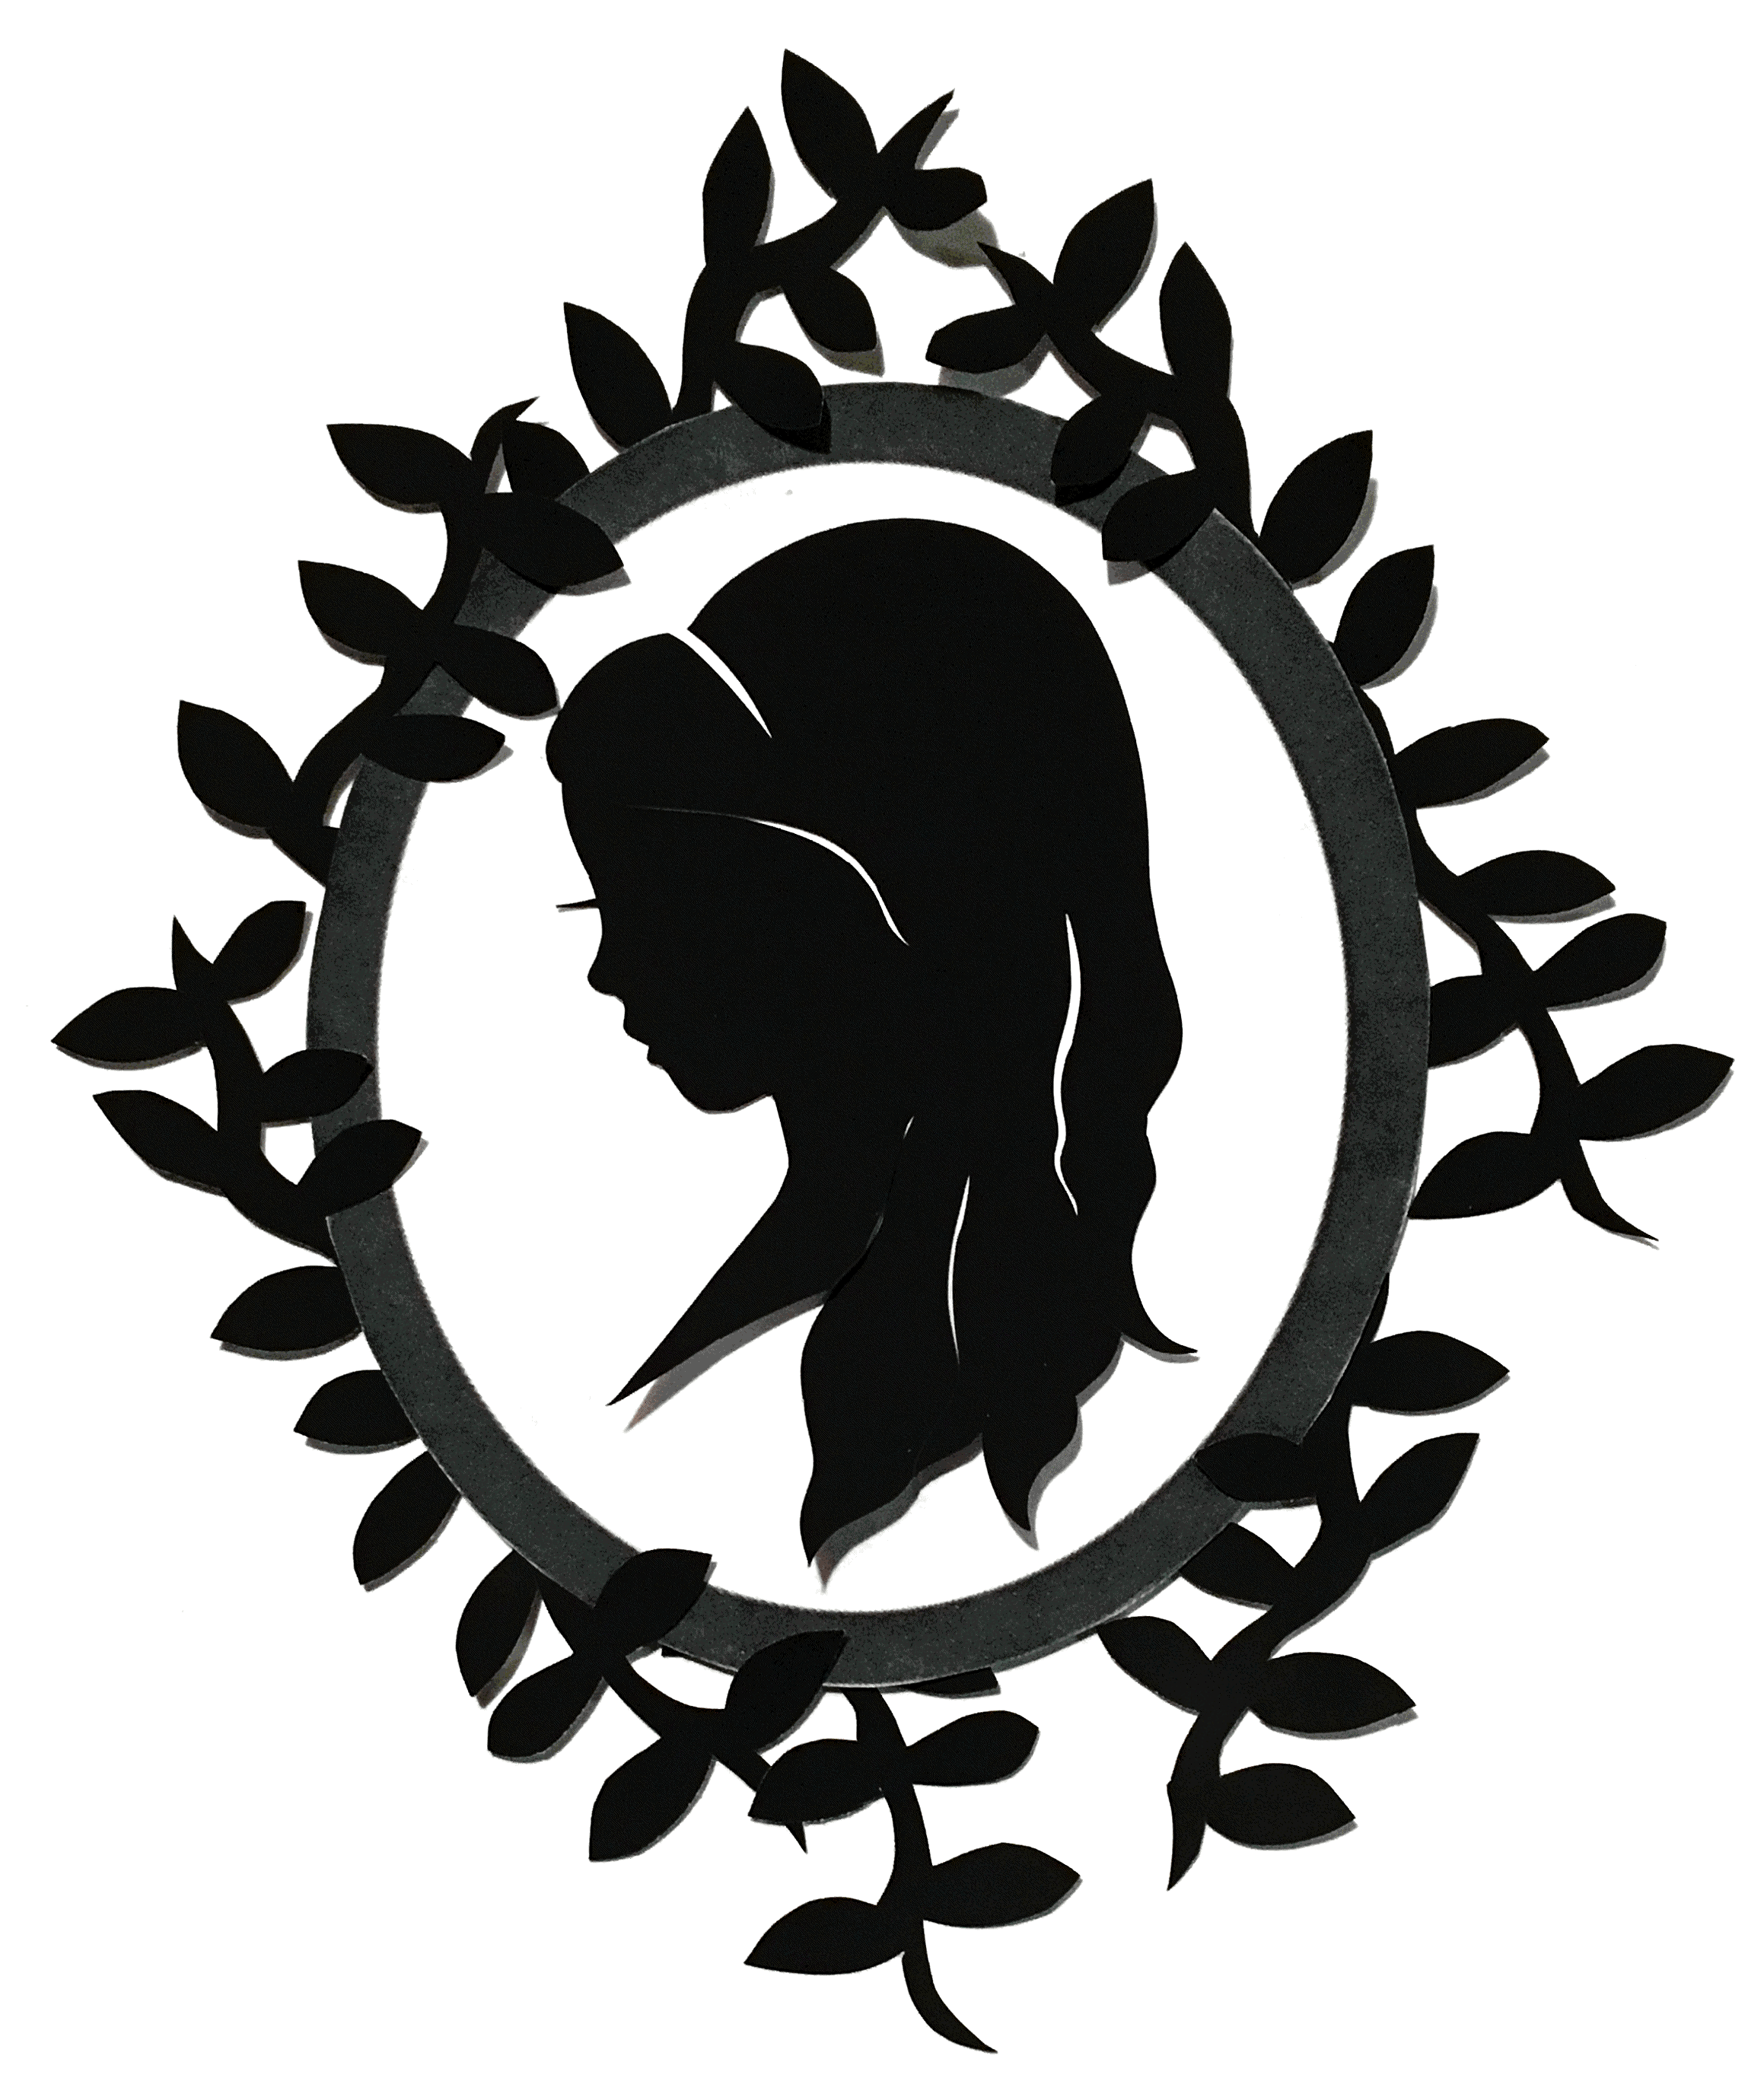 Stylized Silhouette with Cut-Paper Border, 2017